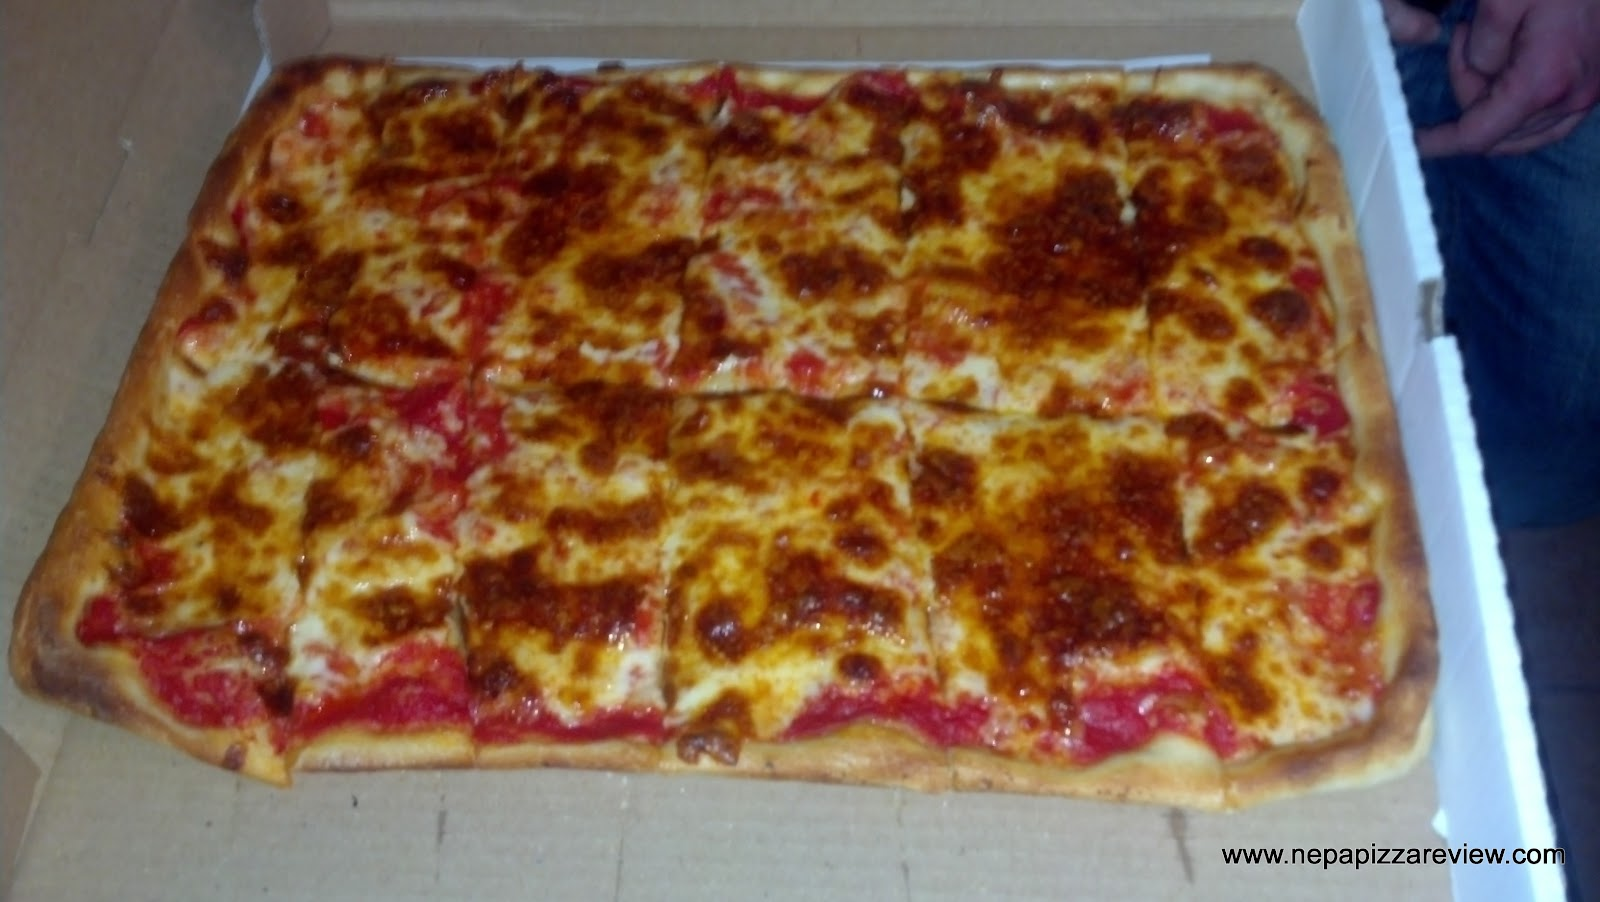 Napoli\'s Pizza - Pittston, Pa | NEPA Pizza Review